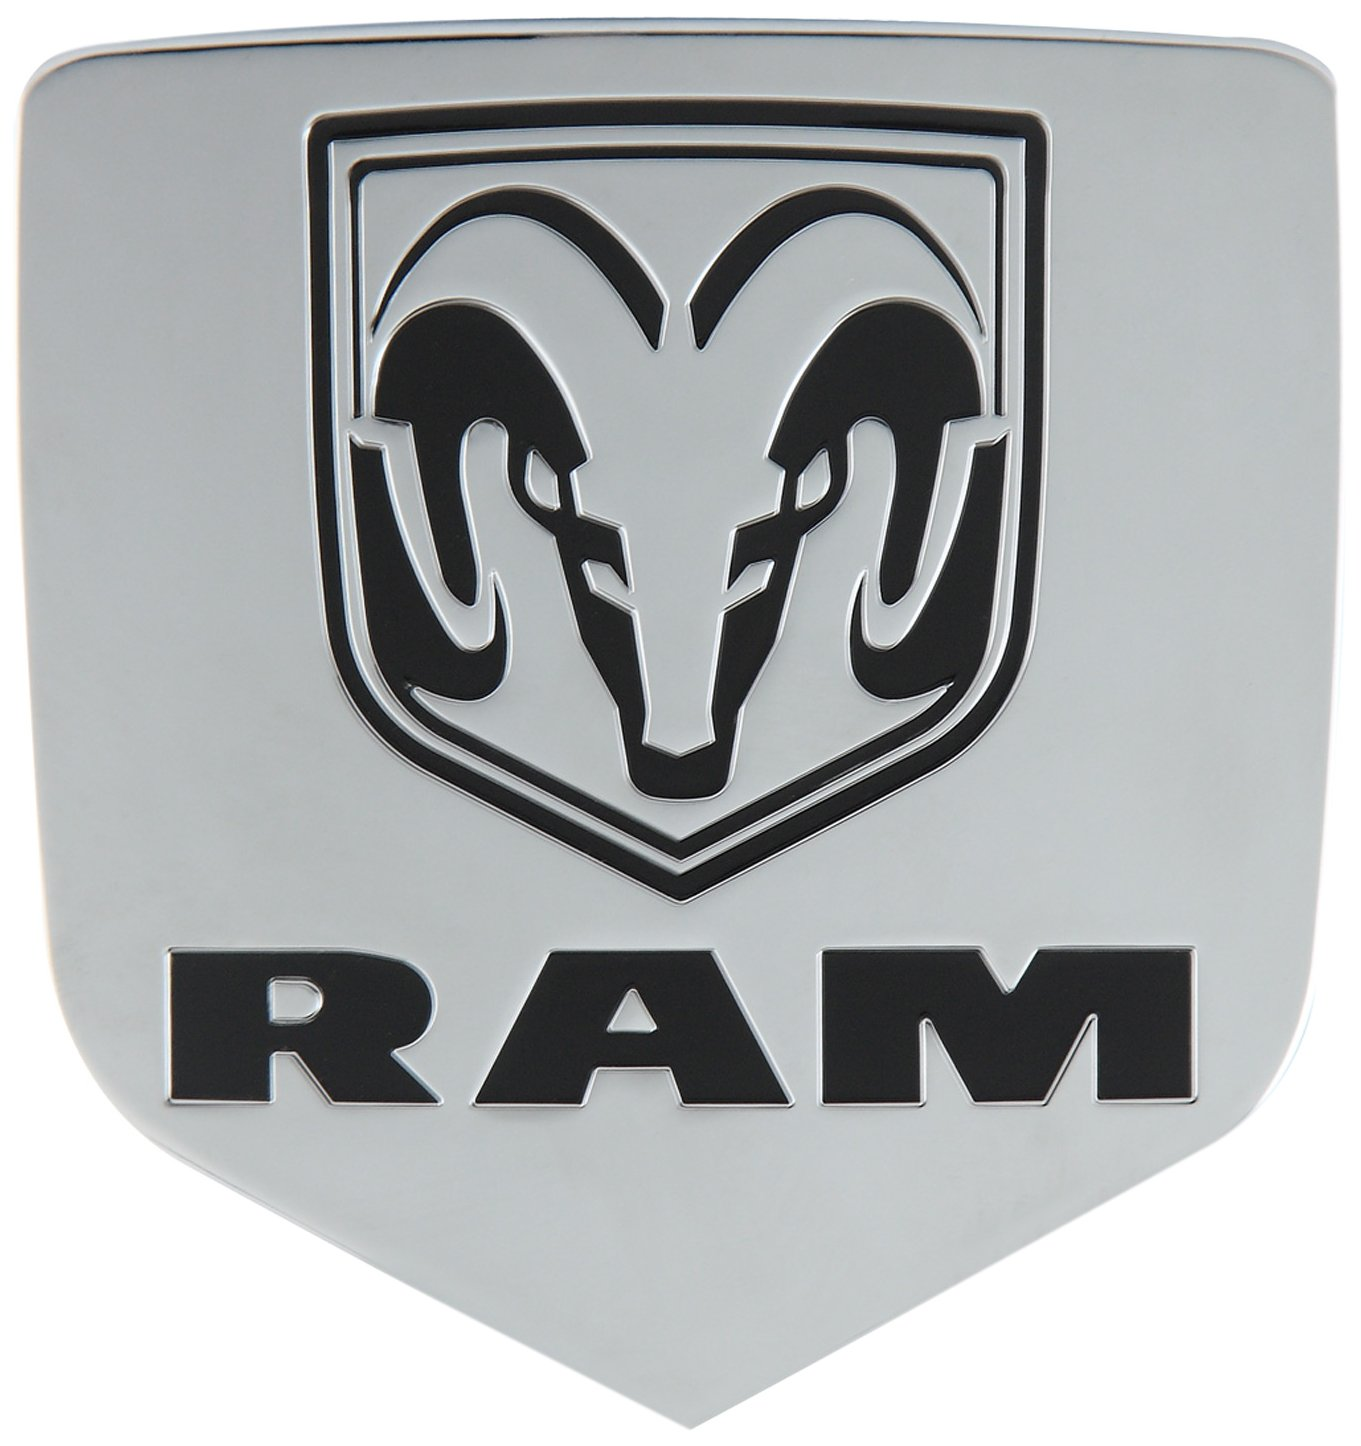 Bully CR-311 Licensed Dodge RAM Logo Truck Trailer Tow Hitch Receiver Cover Exterior Accessories fits 2 Inch Receivers and Plugs - Genuine Licensed Accessory by Bully